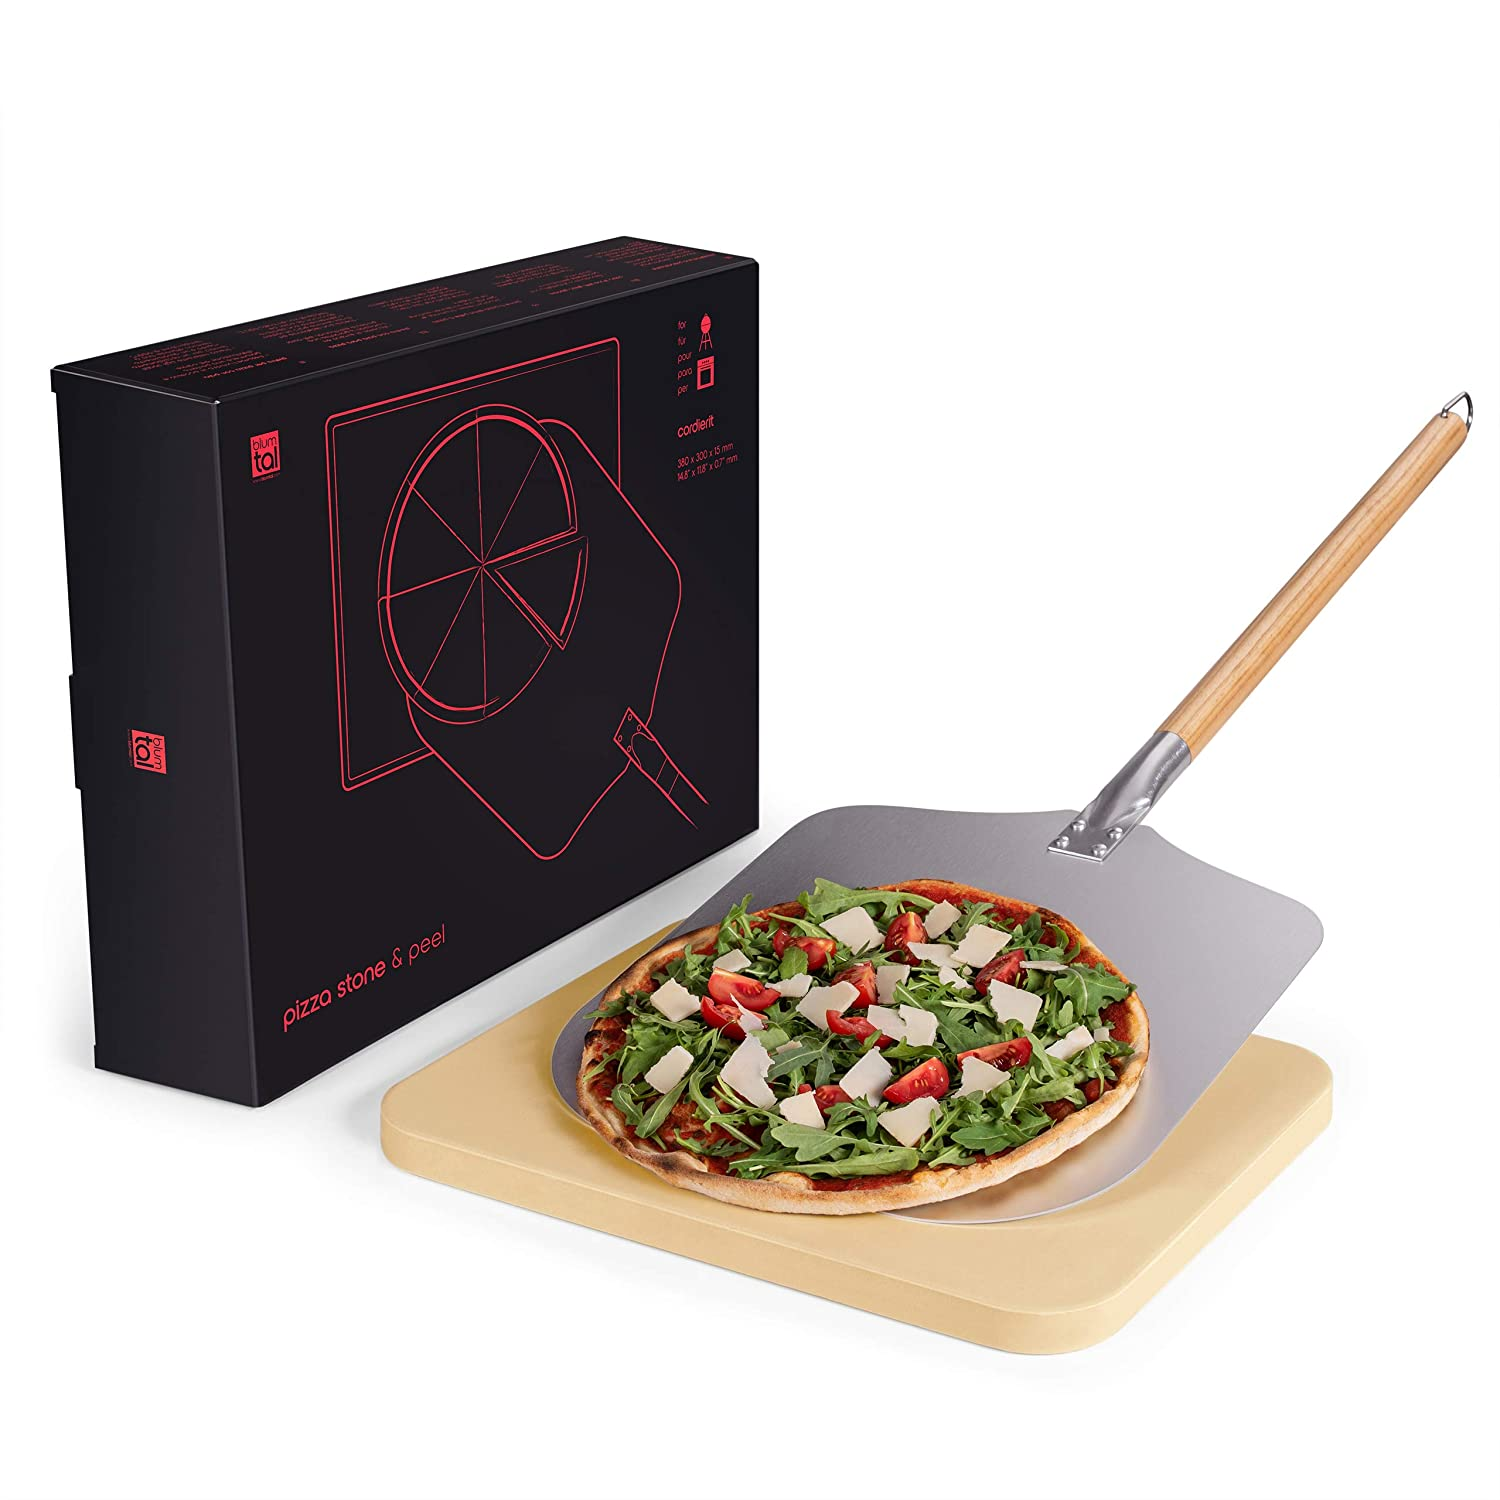 Blumtal Pizza Stone With Peel; Cordierite Pizza Plate With Aluminium Paddle and Long Handle Set Everbrent GmbH